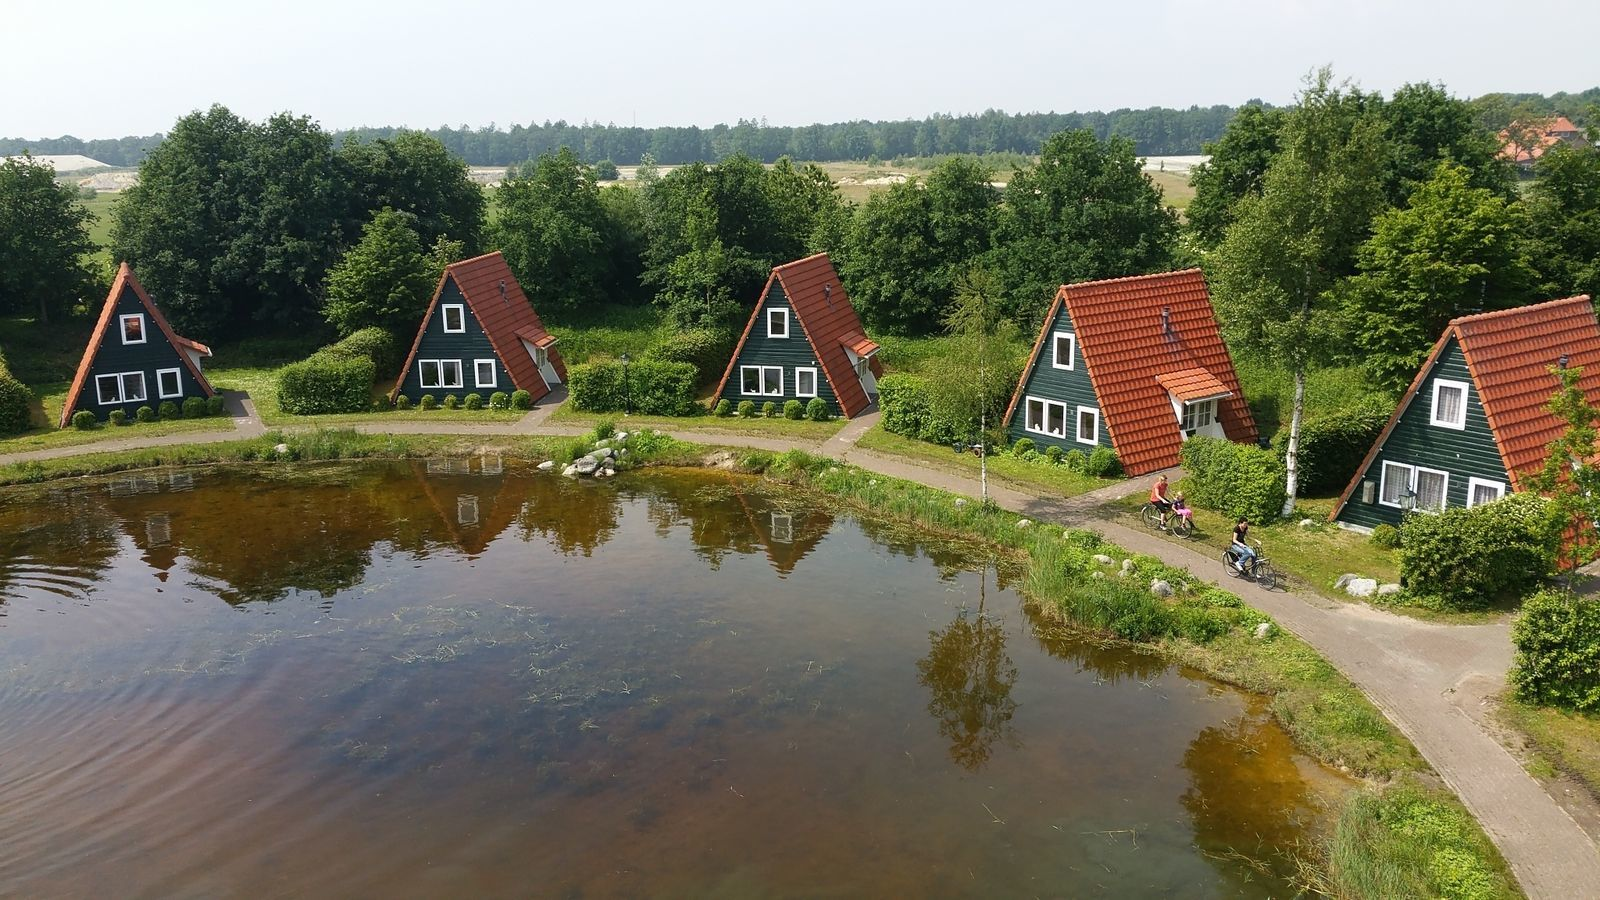 Group accommodation: combination of all holiday park accommodation options (206 people)